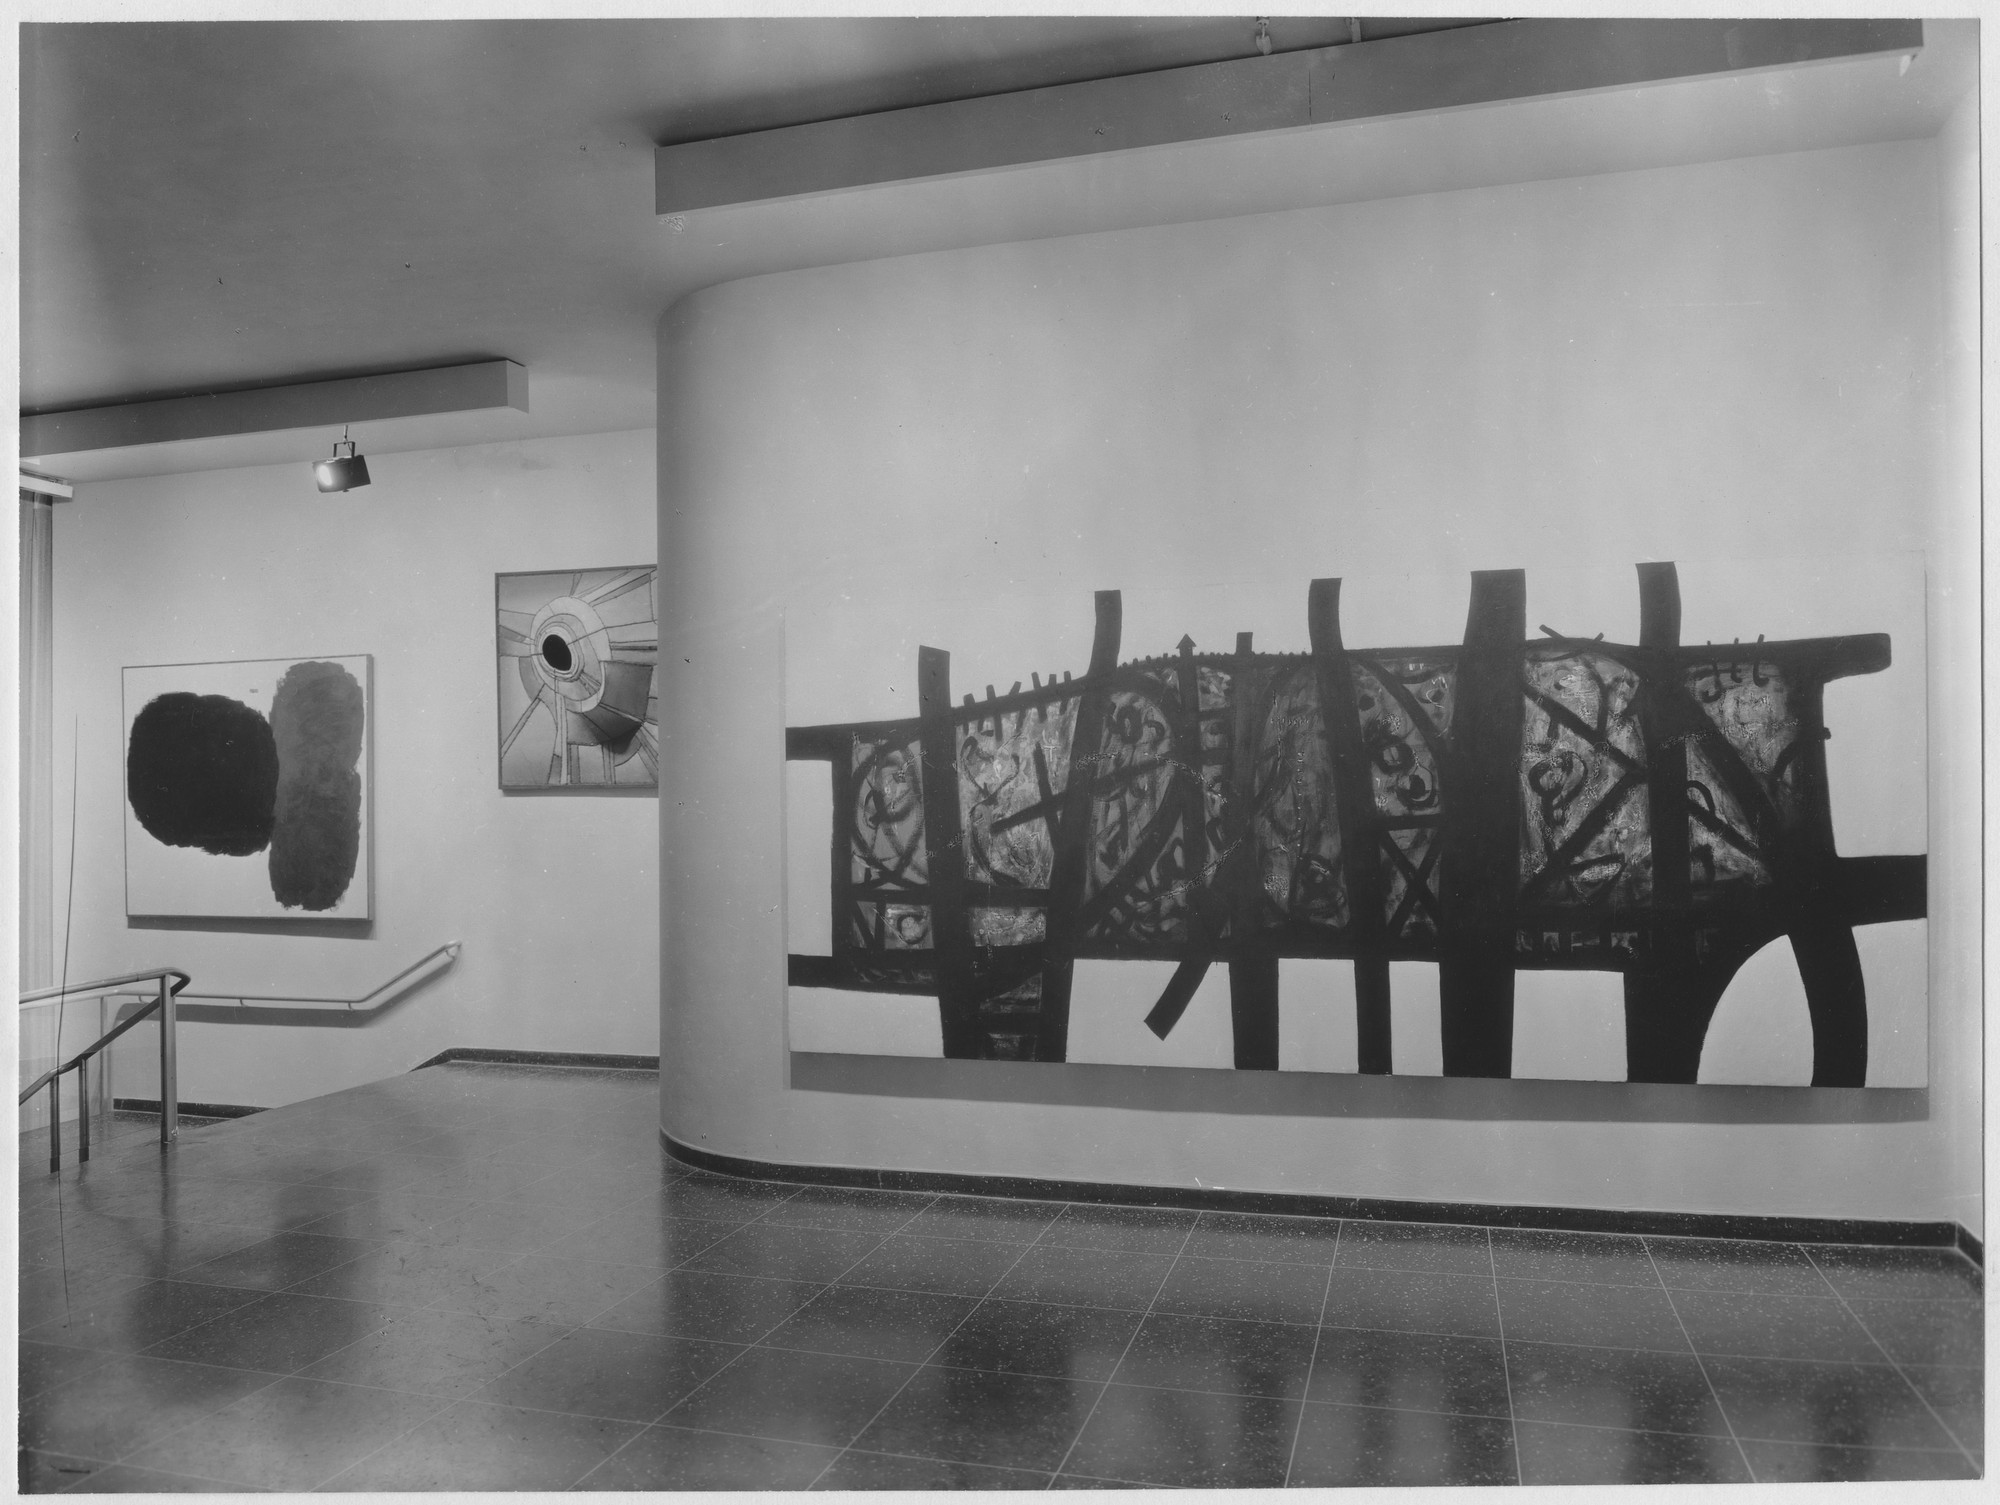 "Installation view of the exhibition, ""Recent Acquisitions."" December 21, 1960–February 5, 1961. Photographic Archive. The Museum of Modern Art Archives, New York. IN678.1. Photograph by Soichi Sunami."